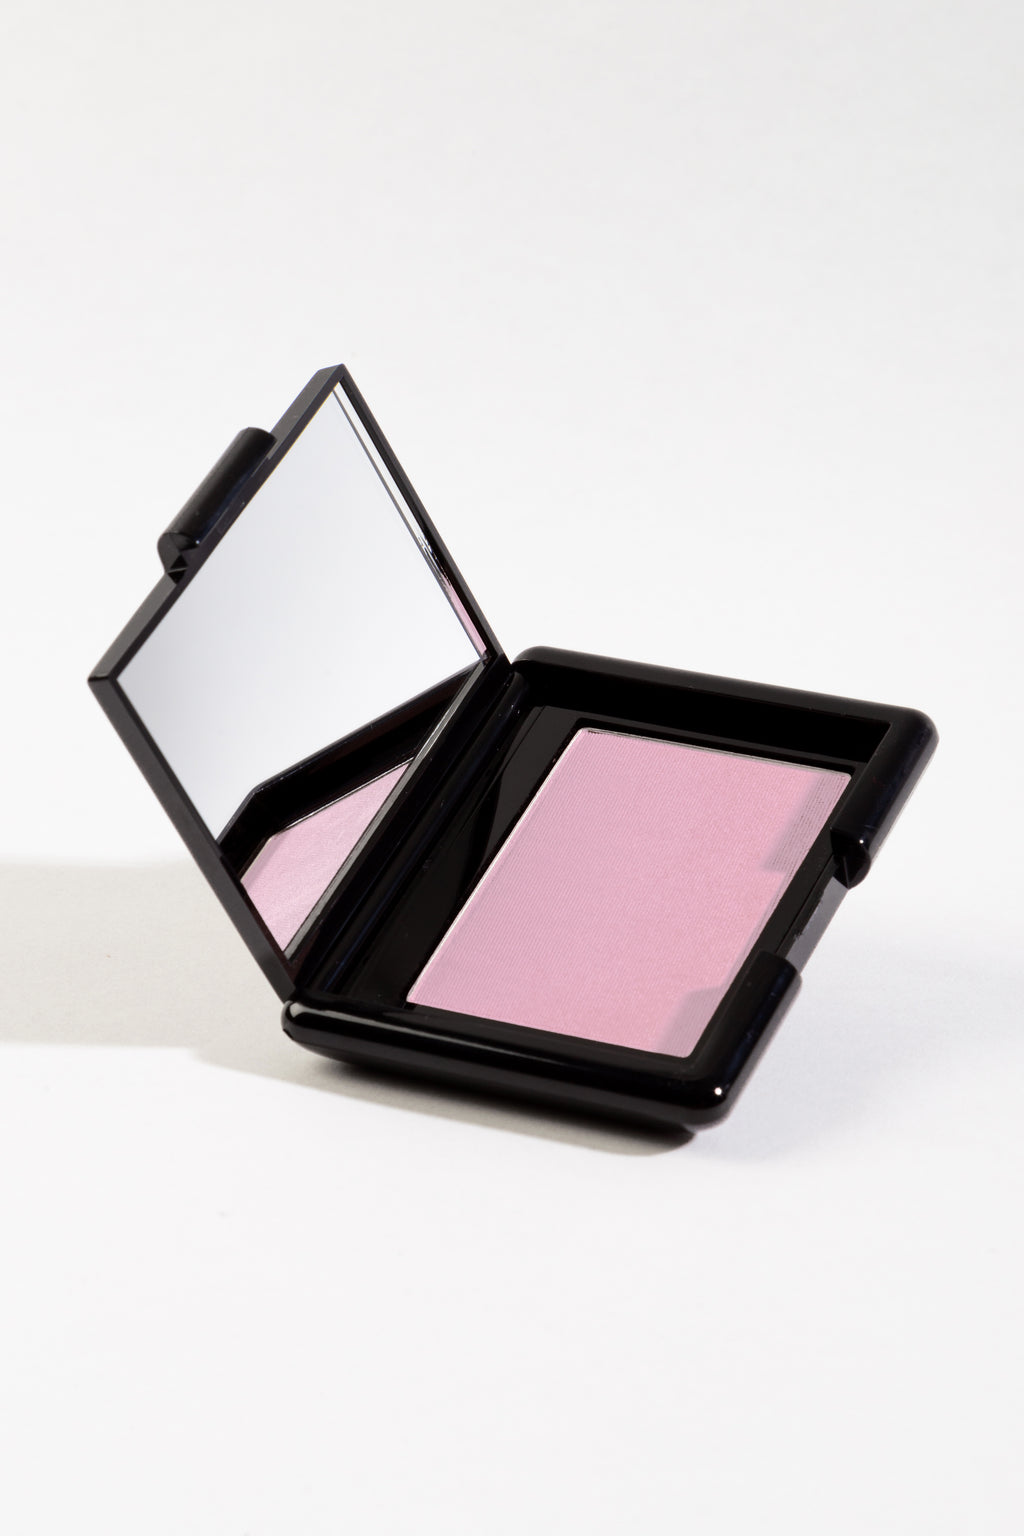 Blush Compact in Virgo